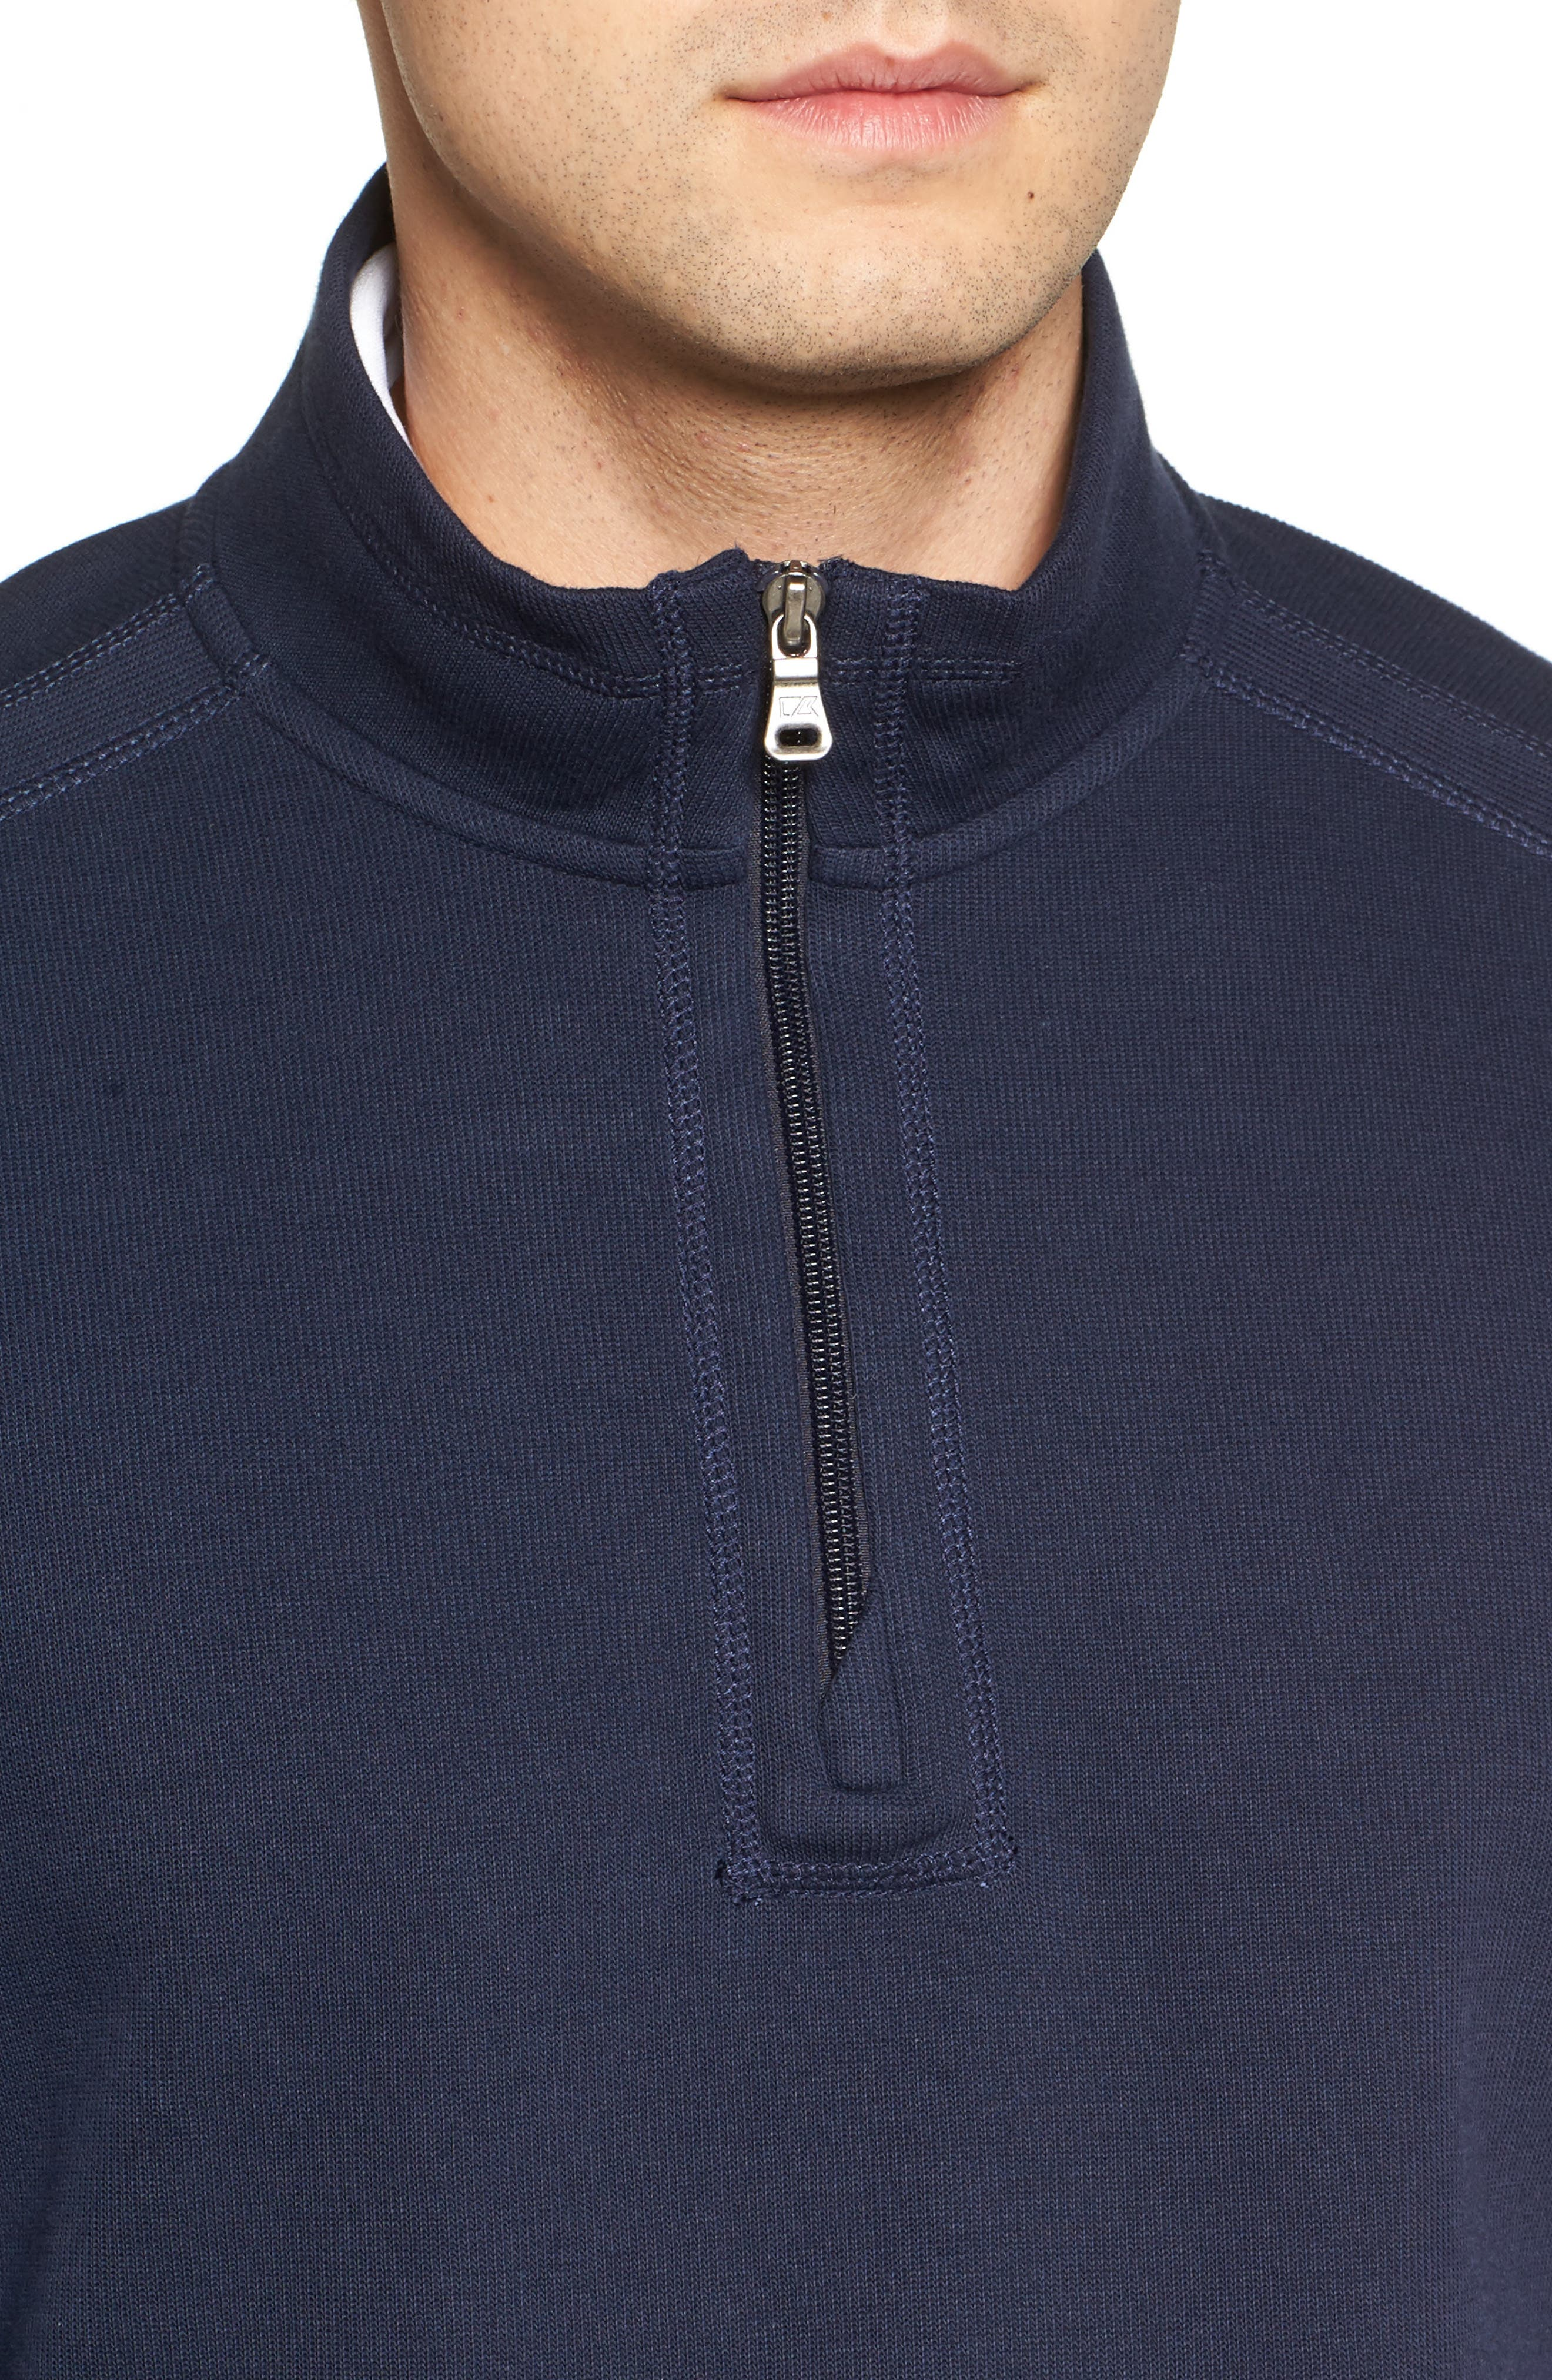 Bayview Quarter Zip Pullover,                             Alternate thumbnail 4, color,                             Liberty Navy